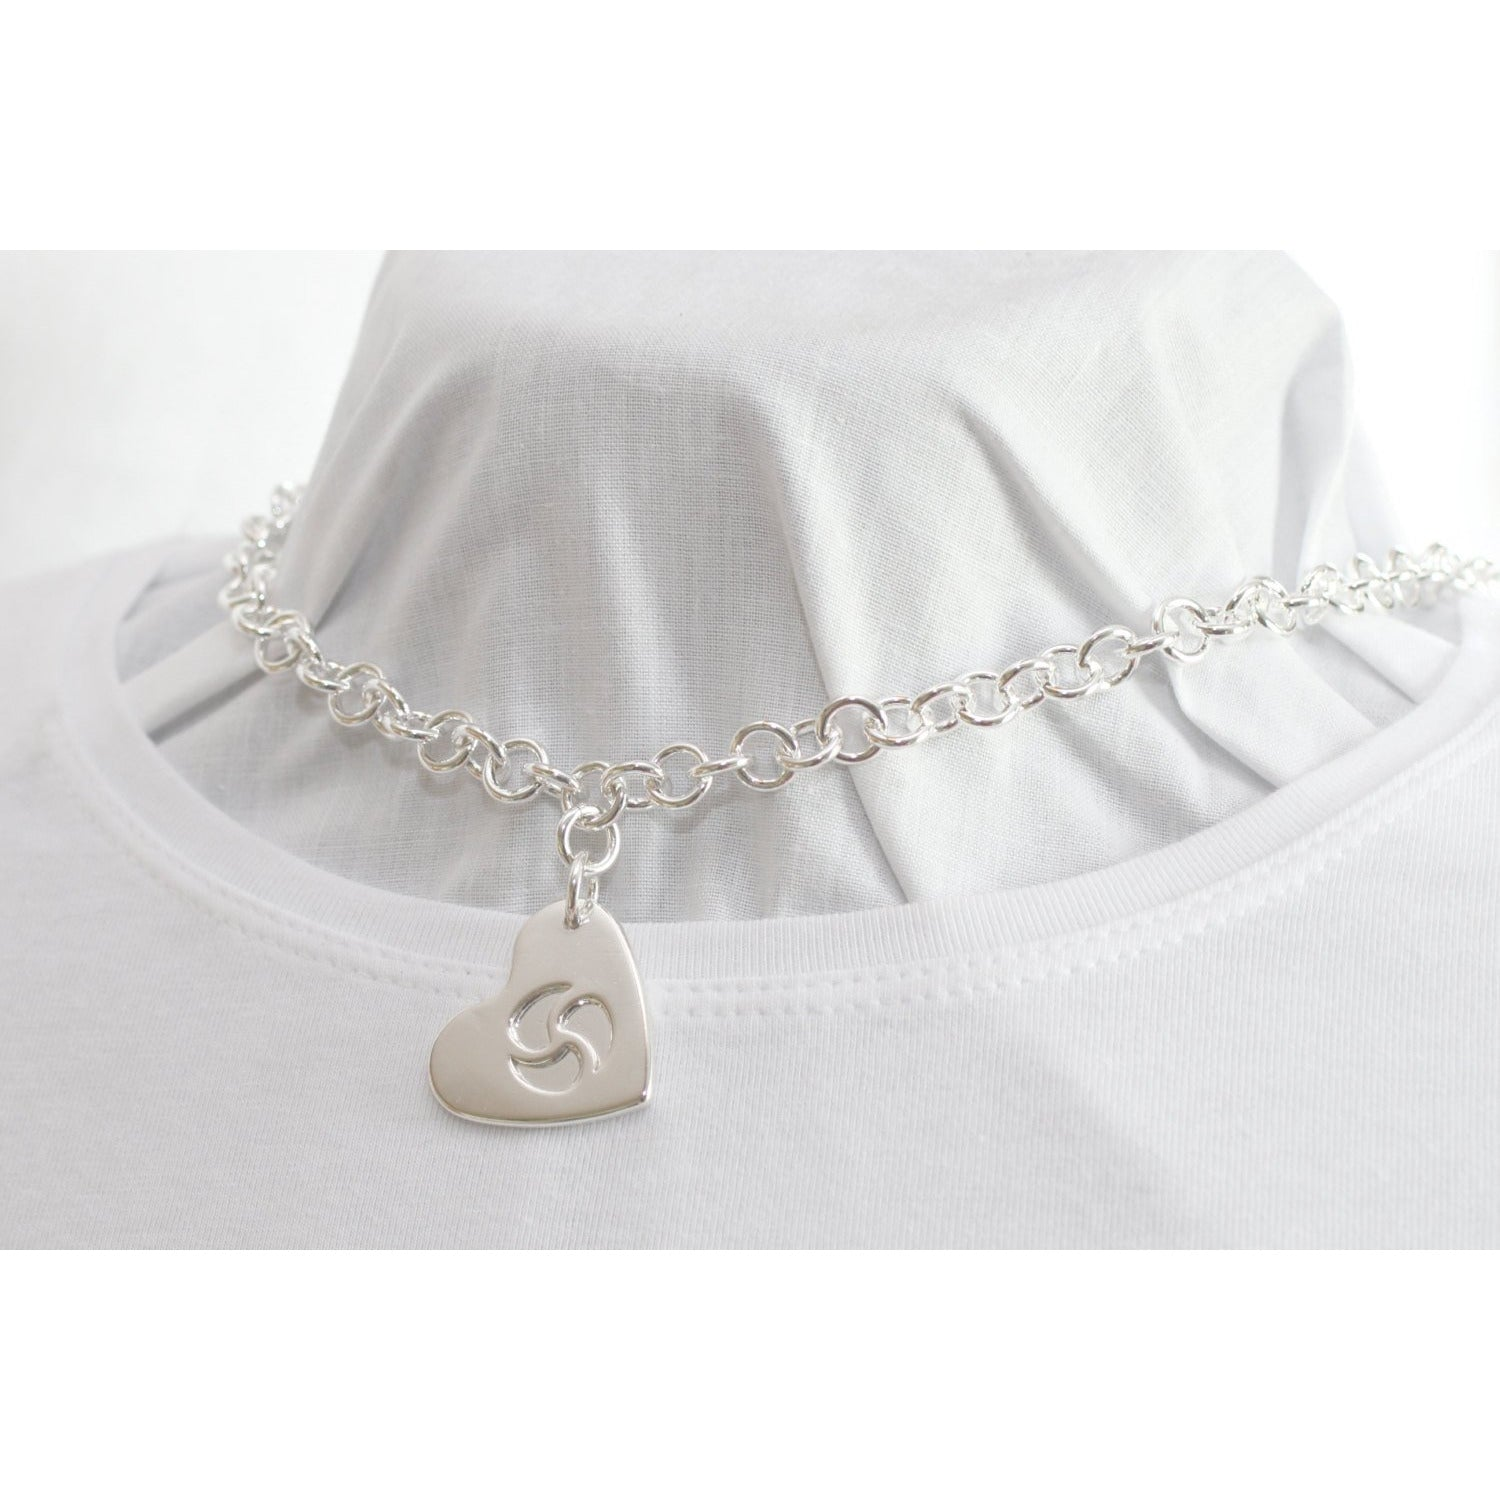 Discreet BDSM Heart, Hidden Triskelion pendant, Day Collar, Sterling Silver Heavy Chain Collar Choker Necklace  Made to order